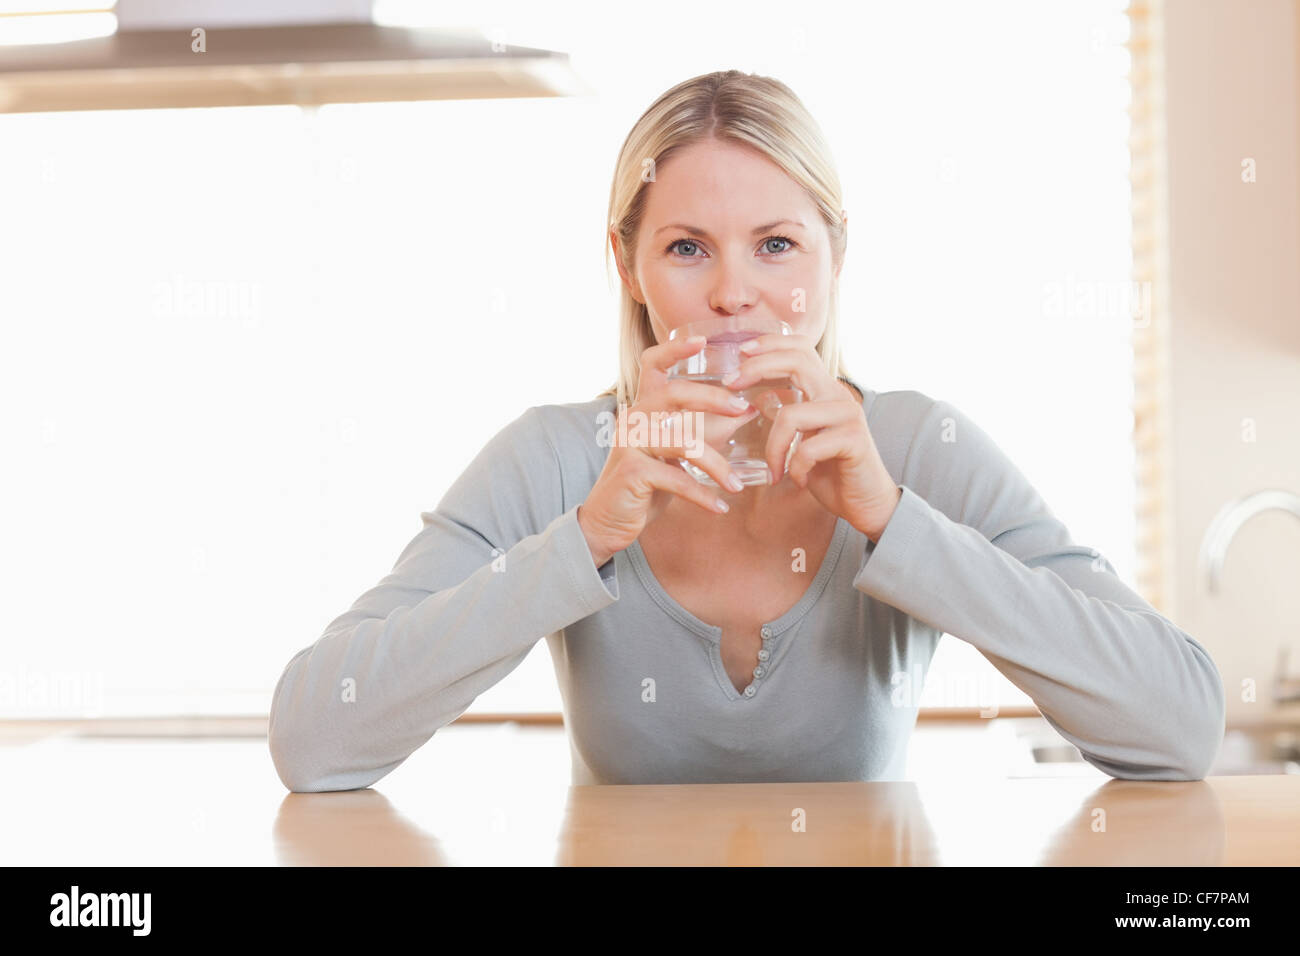 Woman enjoying a sip of water - Stock Image